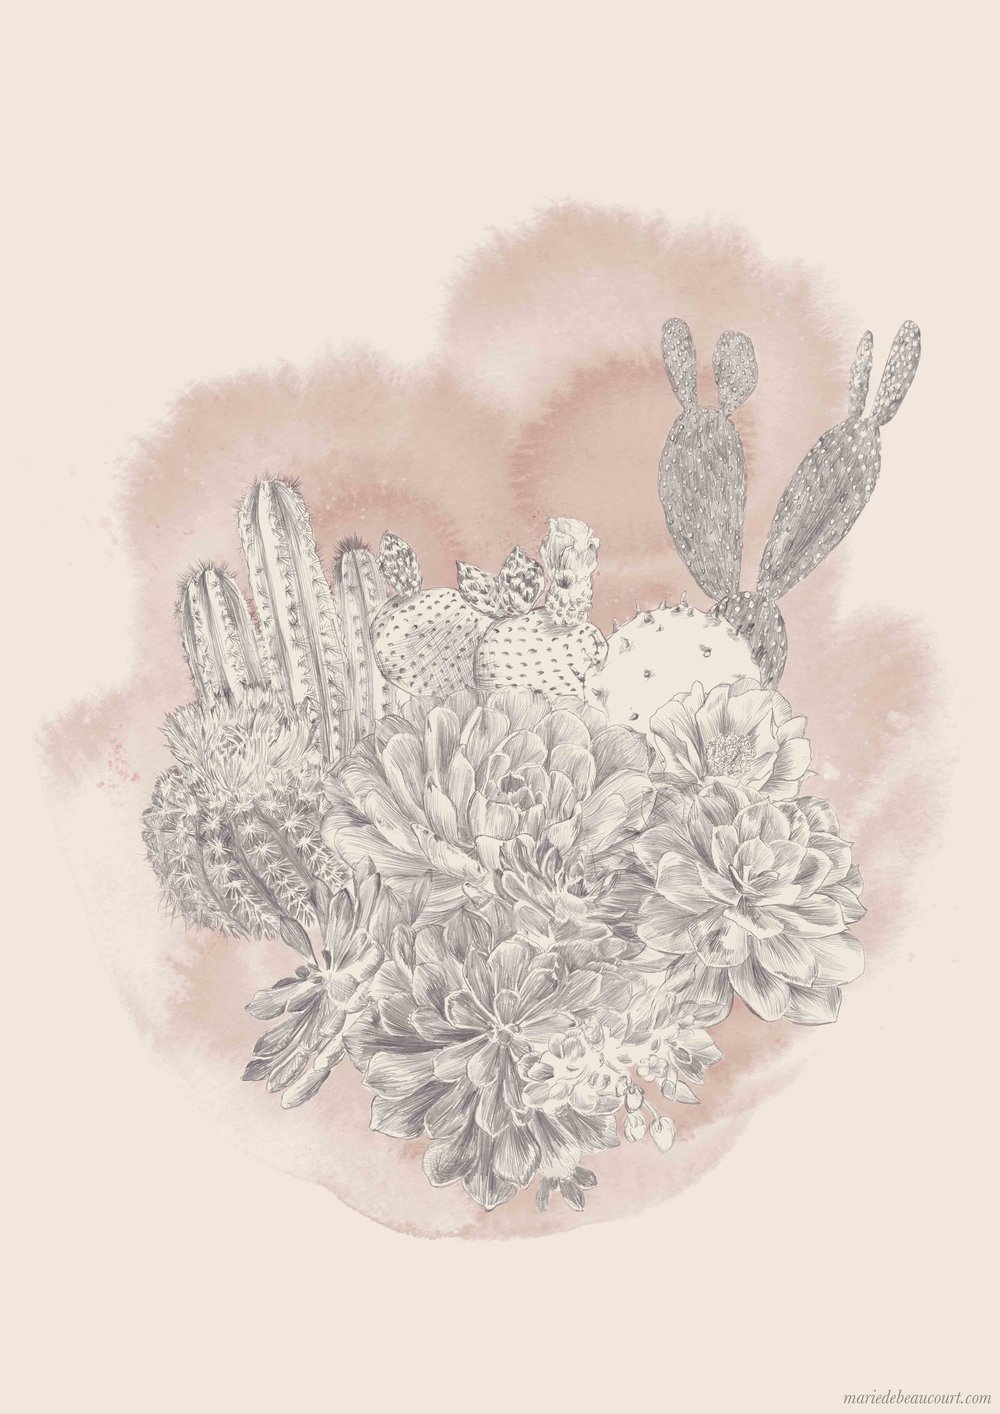 marie-de-beaucourt-illustration-botanic-cactus-2017-web.jpg